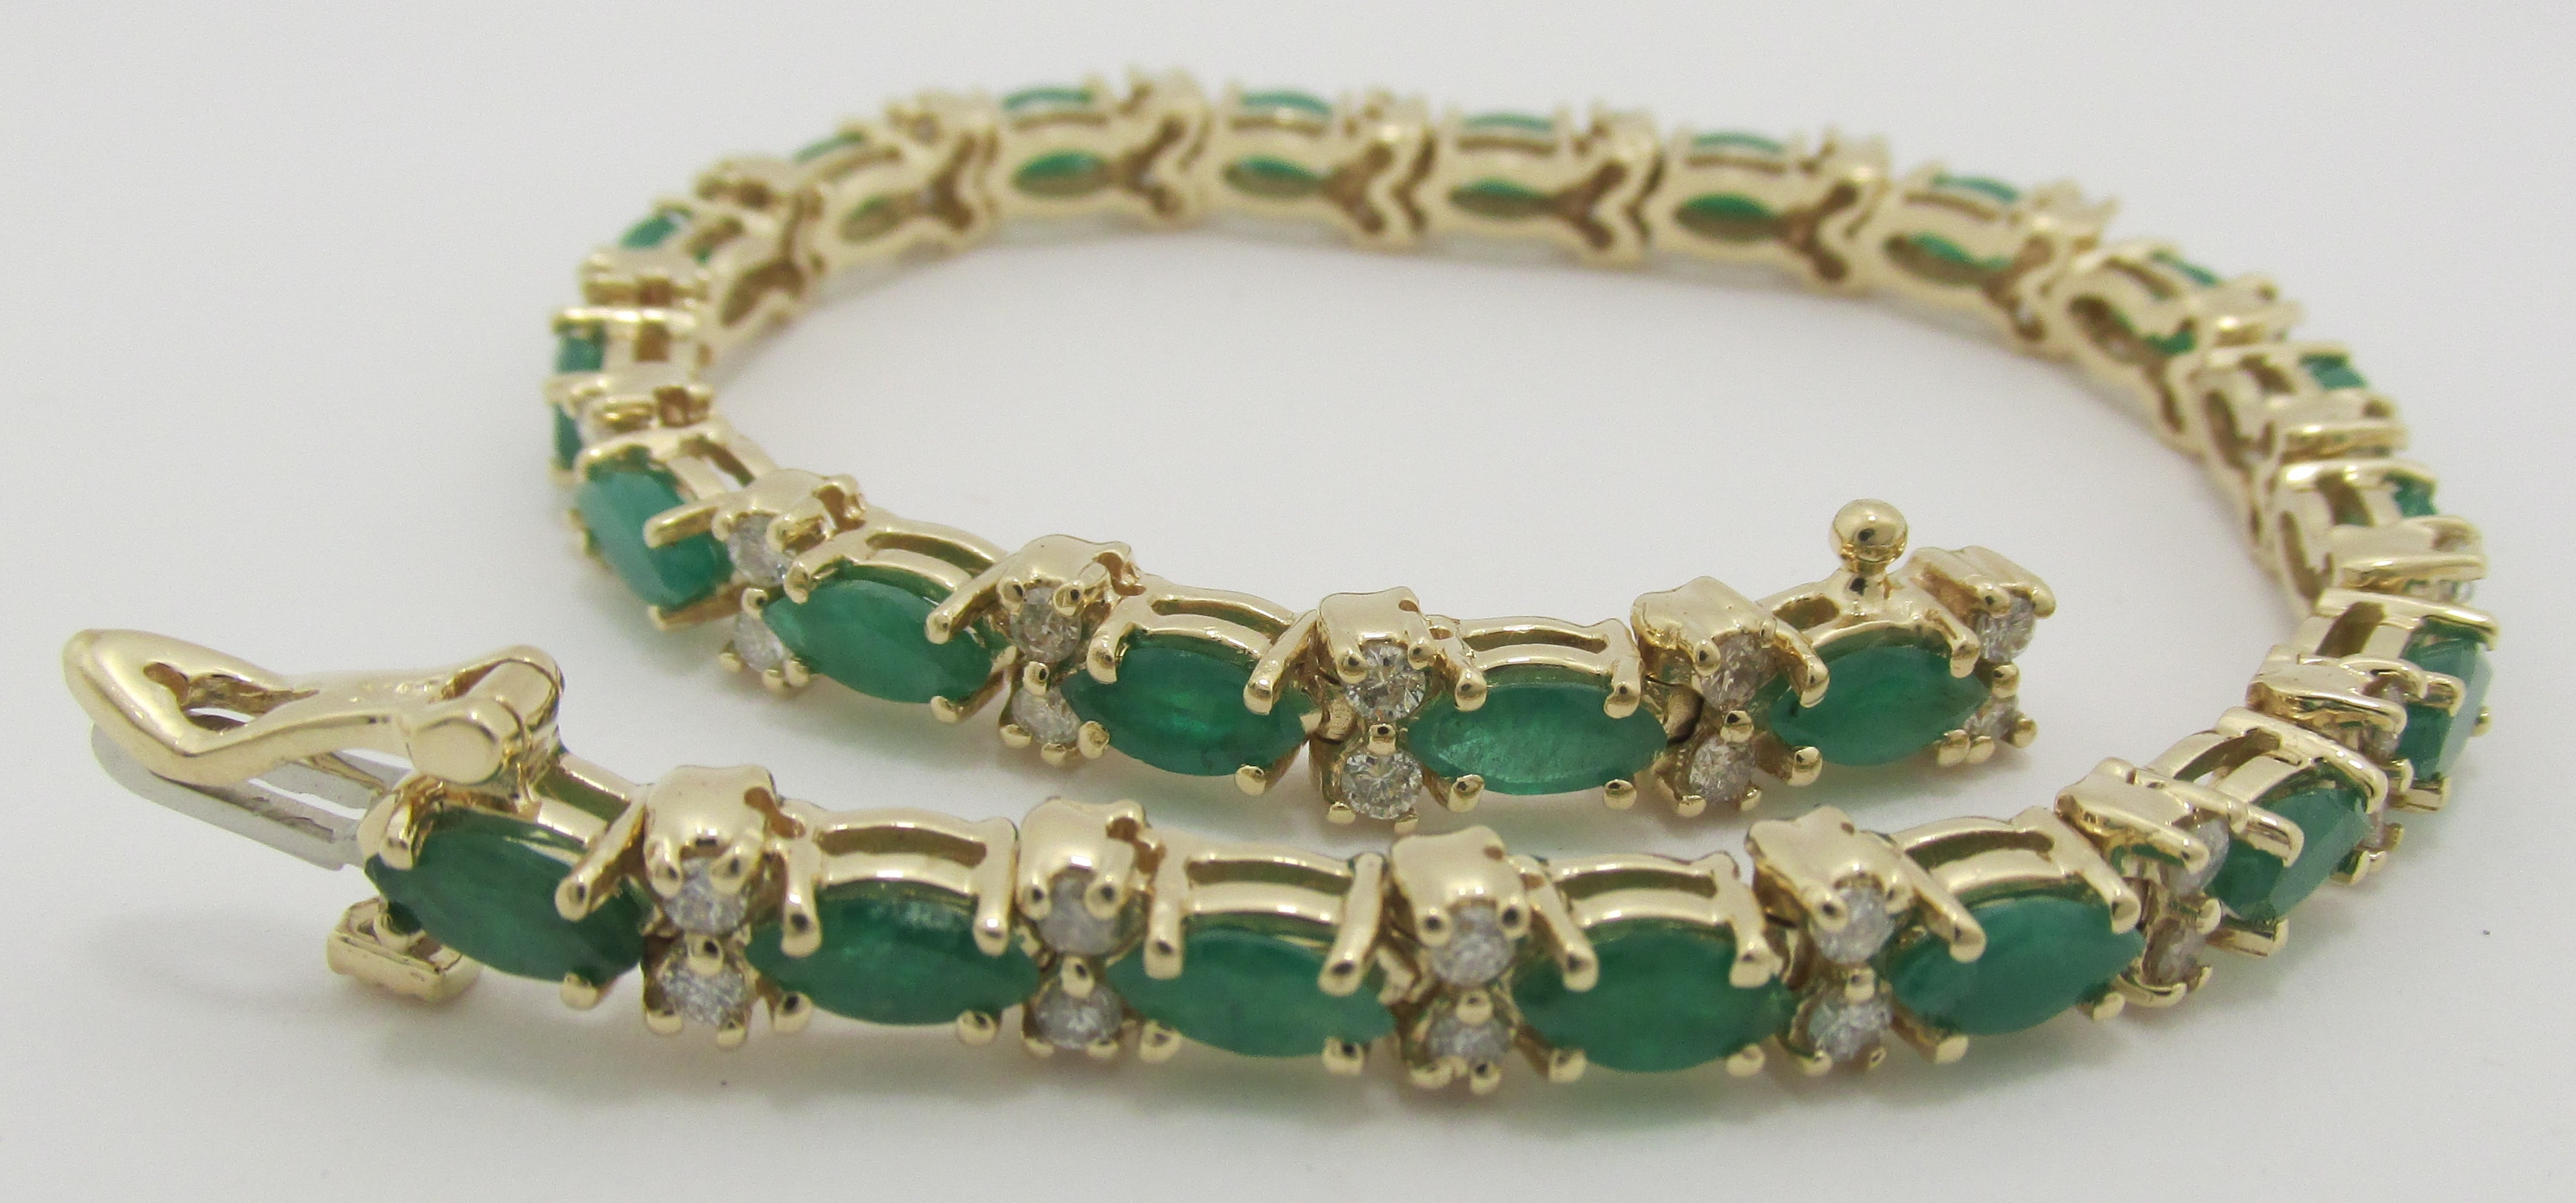 Brand-new 14K Solid Gold Genuine Emerald and Diamond Tennis Bracelet  PL59